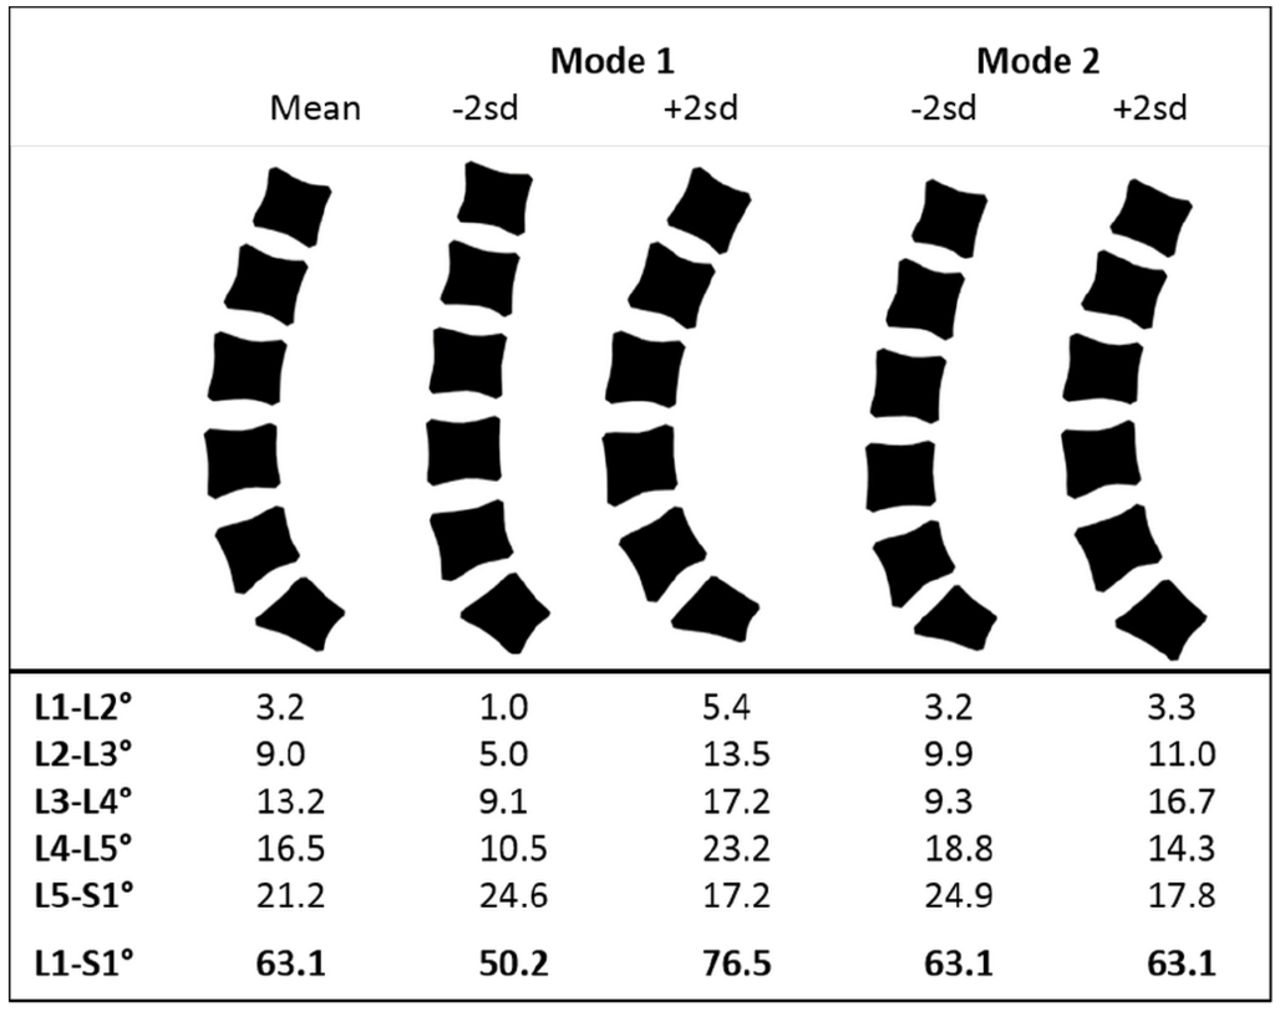 Variation in lifting kinematics related to individual intrinsic